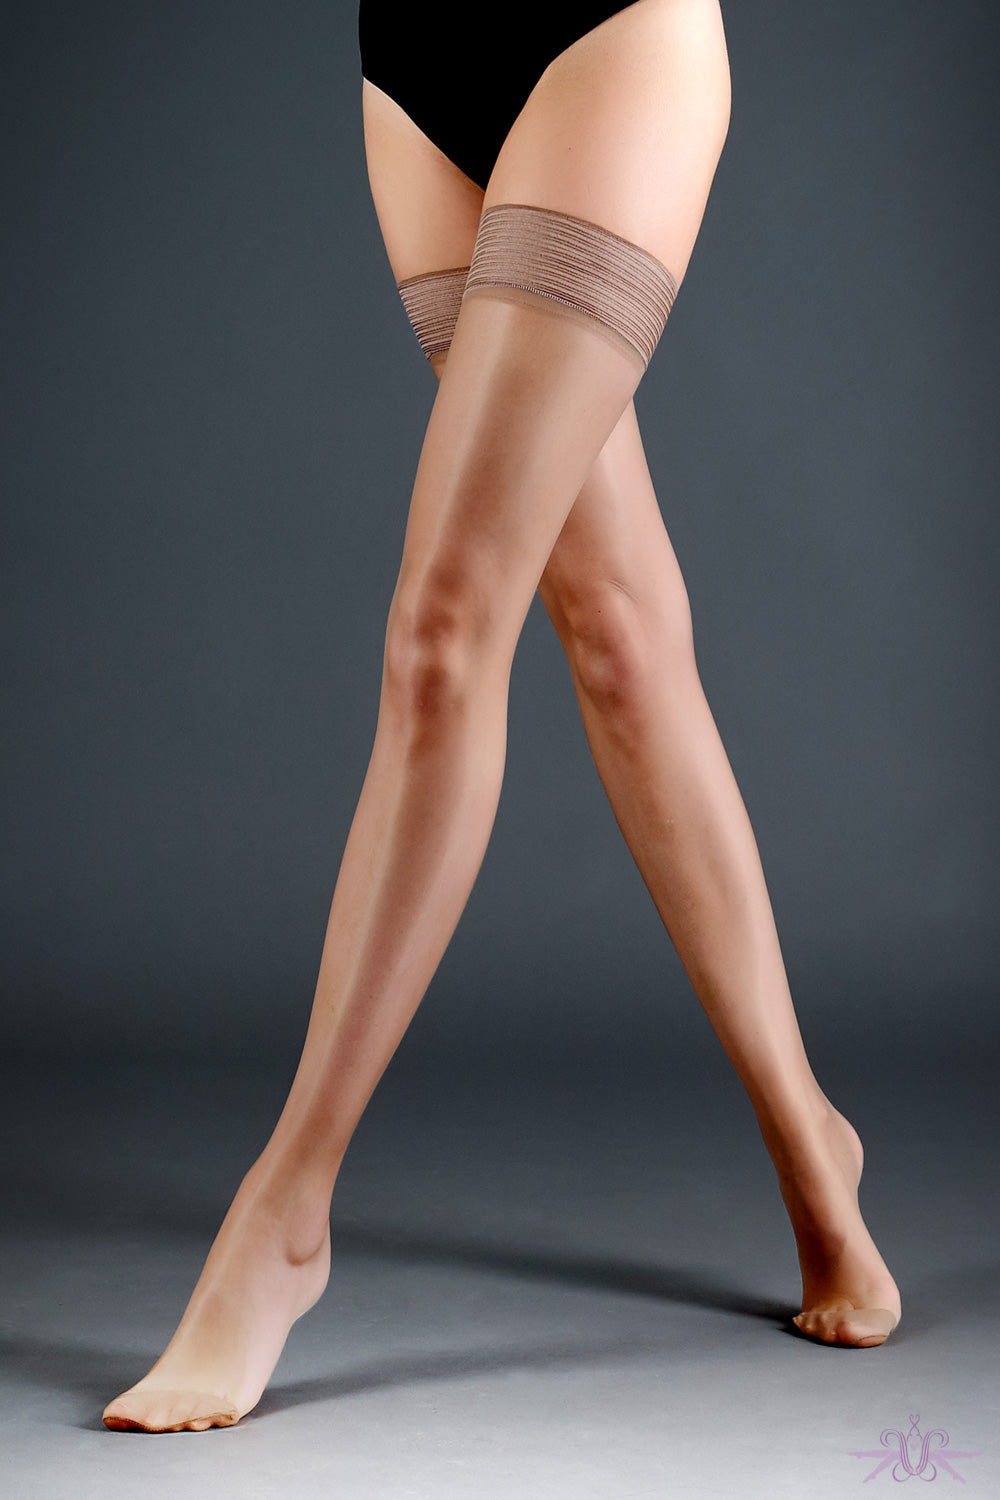 Bluebella Nude Plain Top Hold Ups - Mayfair Stockings